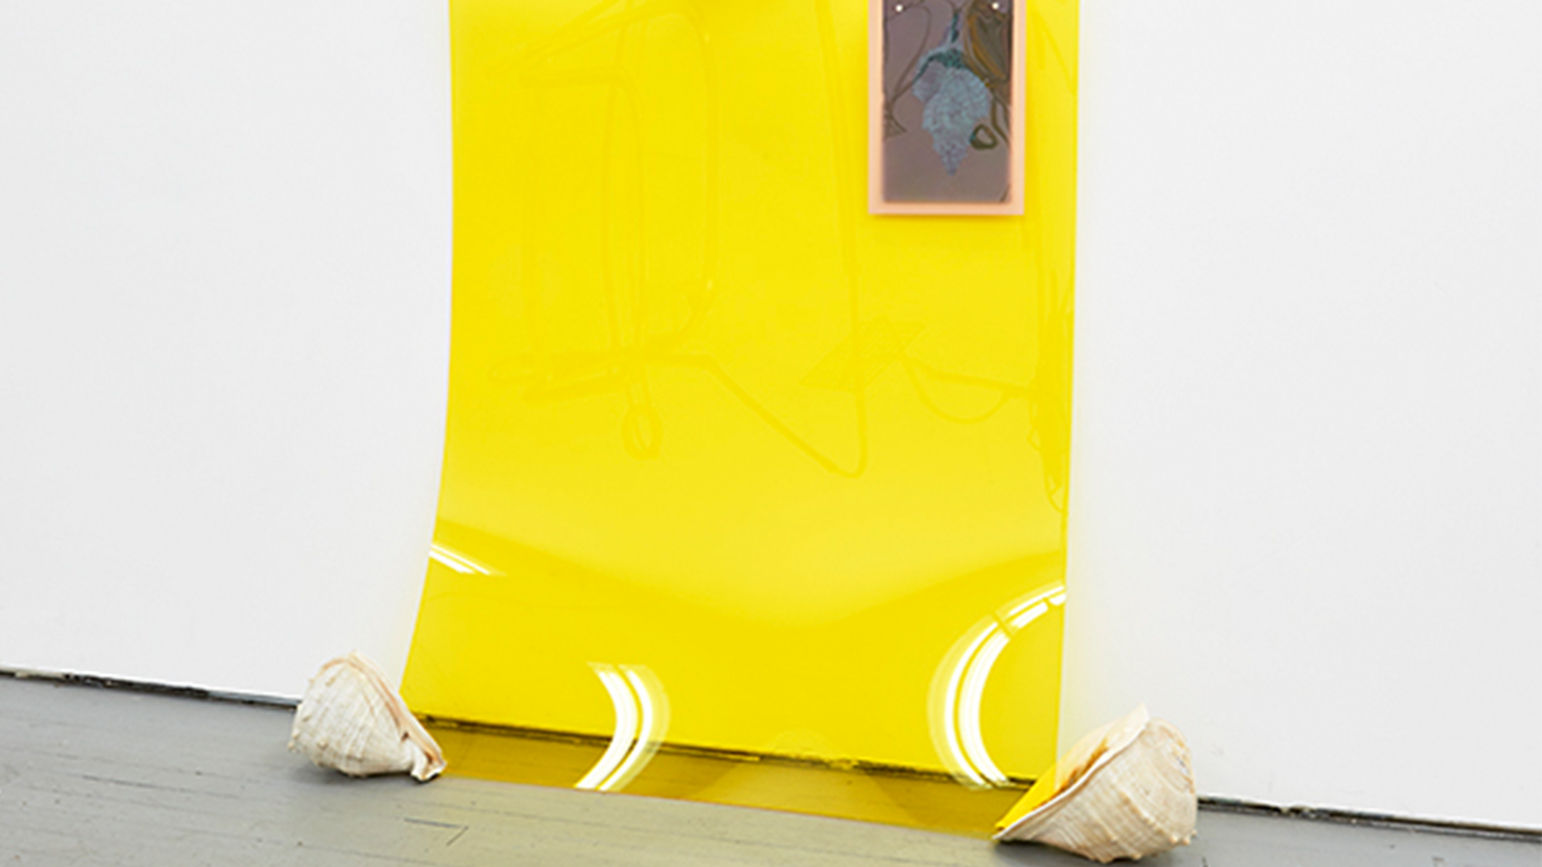 Image of artwork by Las Hermanas Iglesias, showing a large transparent yellow sheet leaning against a wall with conch shells.